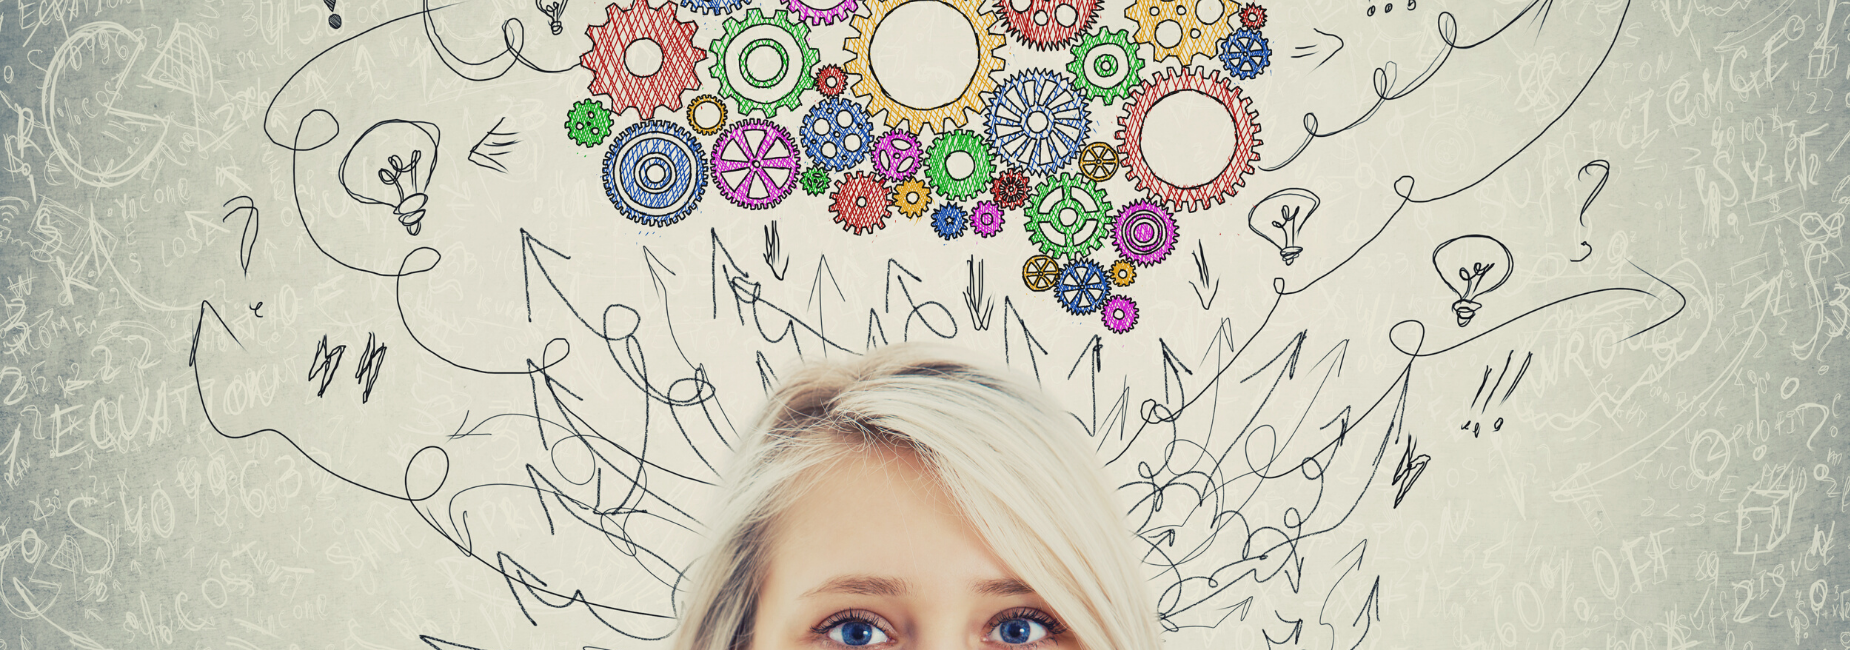 woman with images of ideas above her head